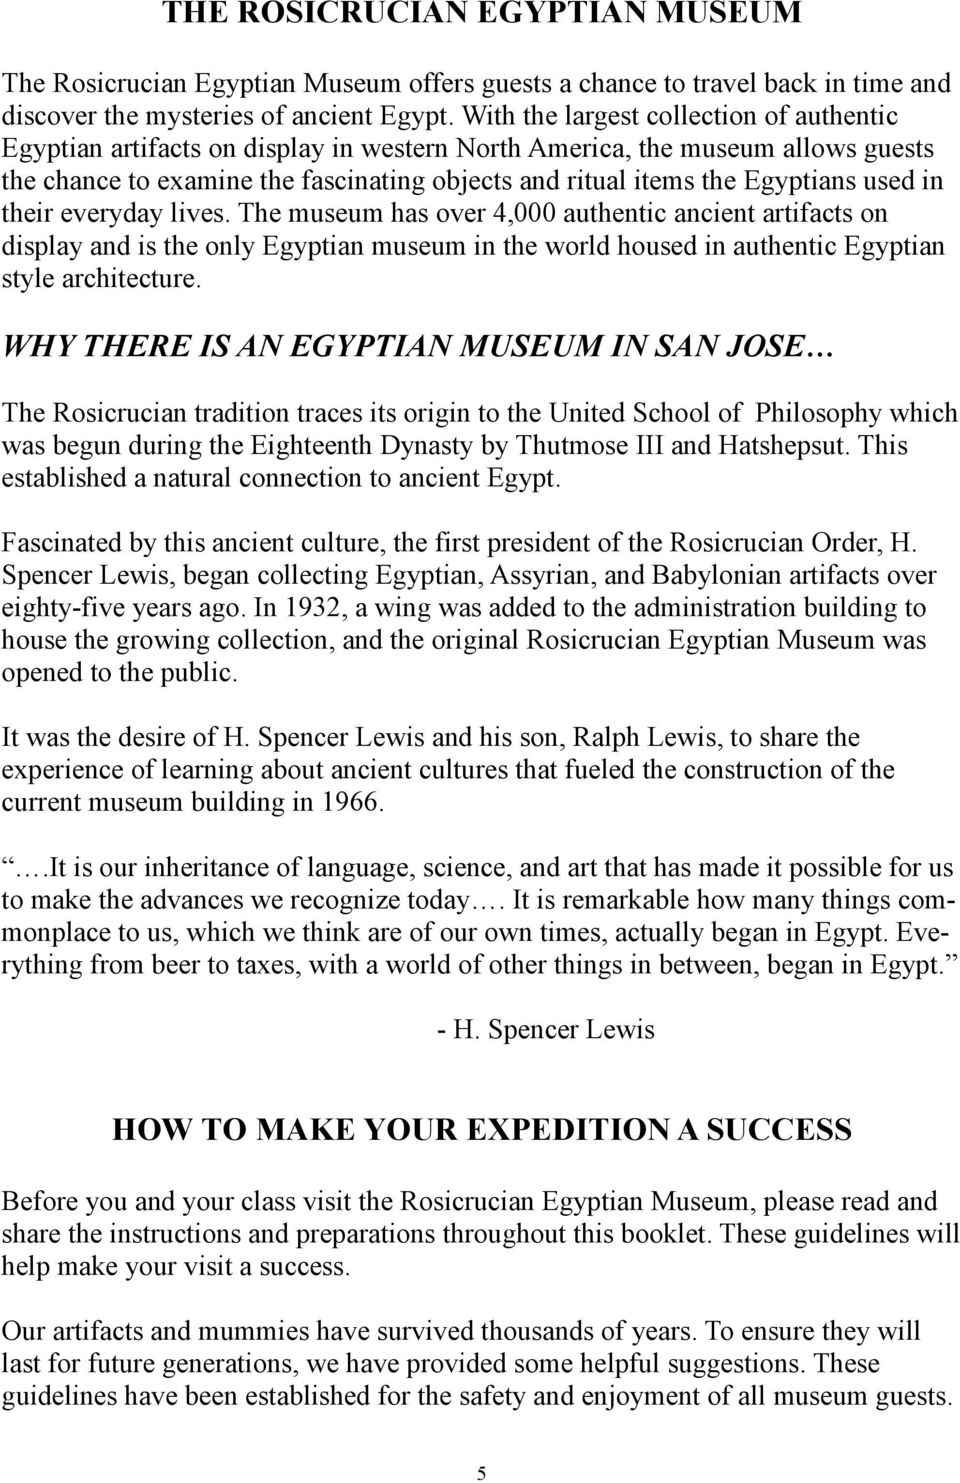 A JOURNEY THROUGH ANCIENT EGYPT MUSEUM EXPEDITION DESCRIPTION - PDF